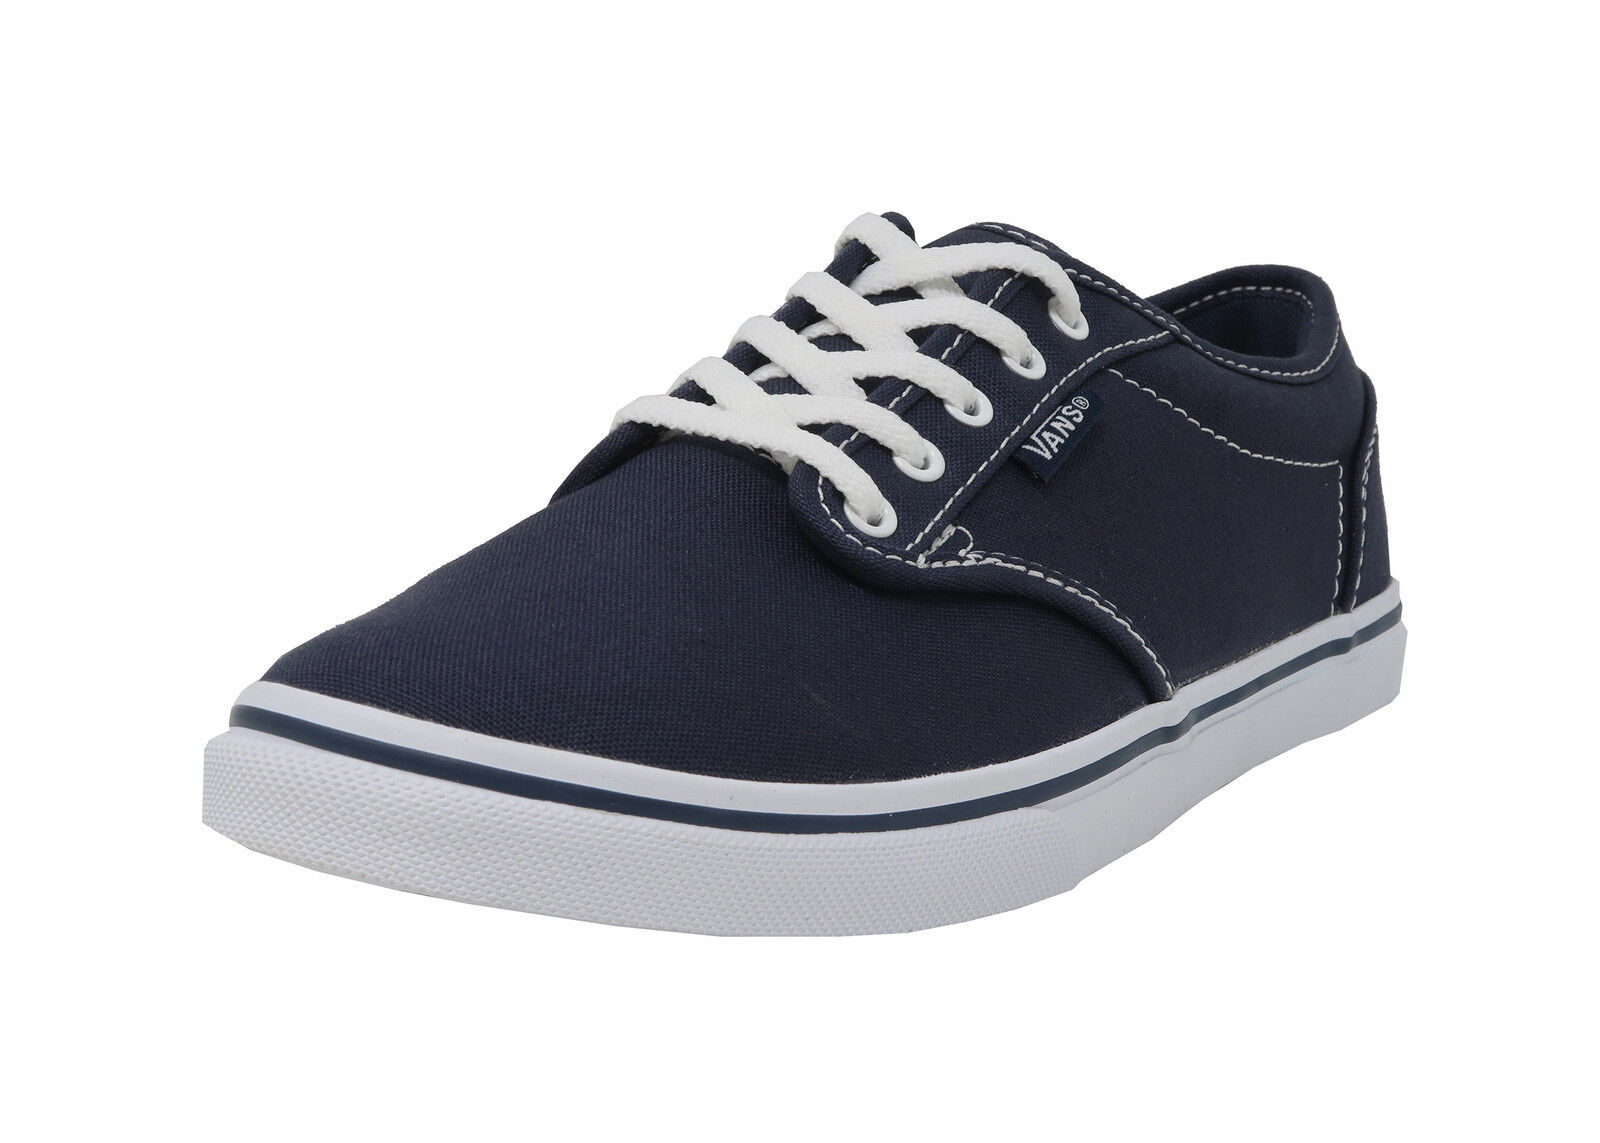 VANS Atwood Low Navy Blau WEISS Lace Up Lady Sneakers Damens Schuhes